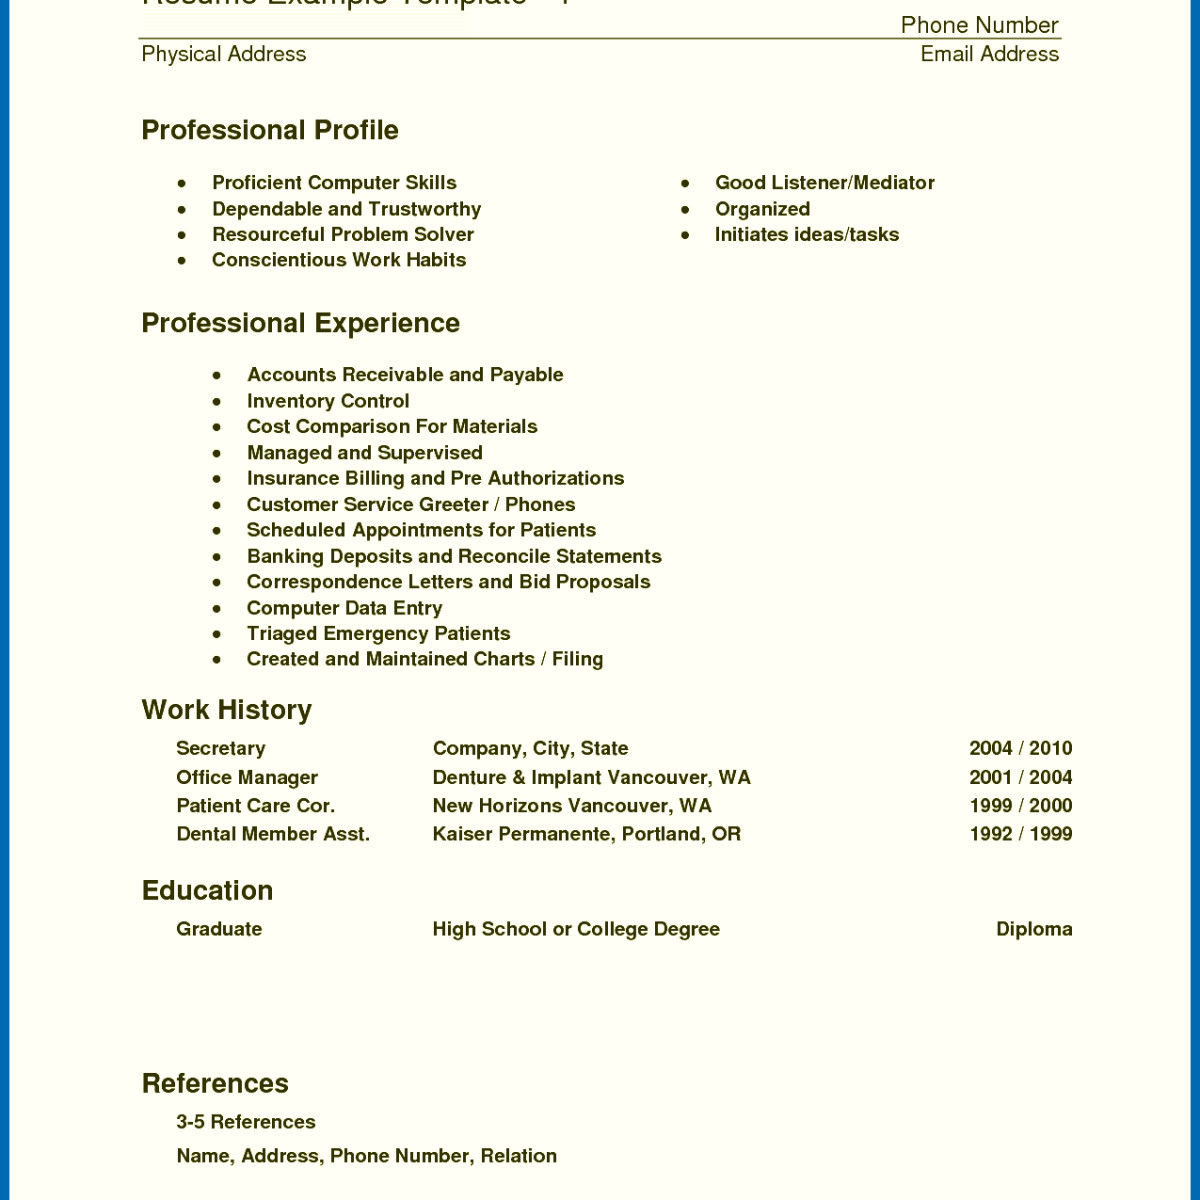 Medical assistant Resume Objective - Resume Medical assistant Examples Awesome Resume Skills for Customer